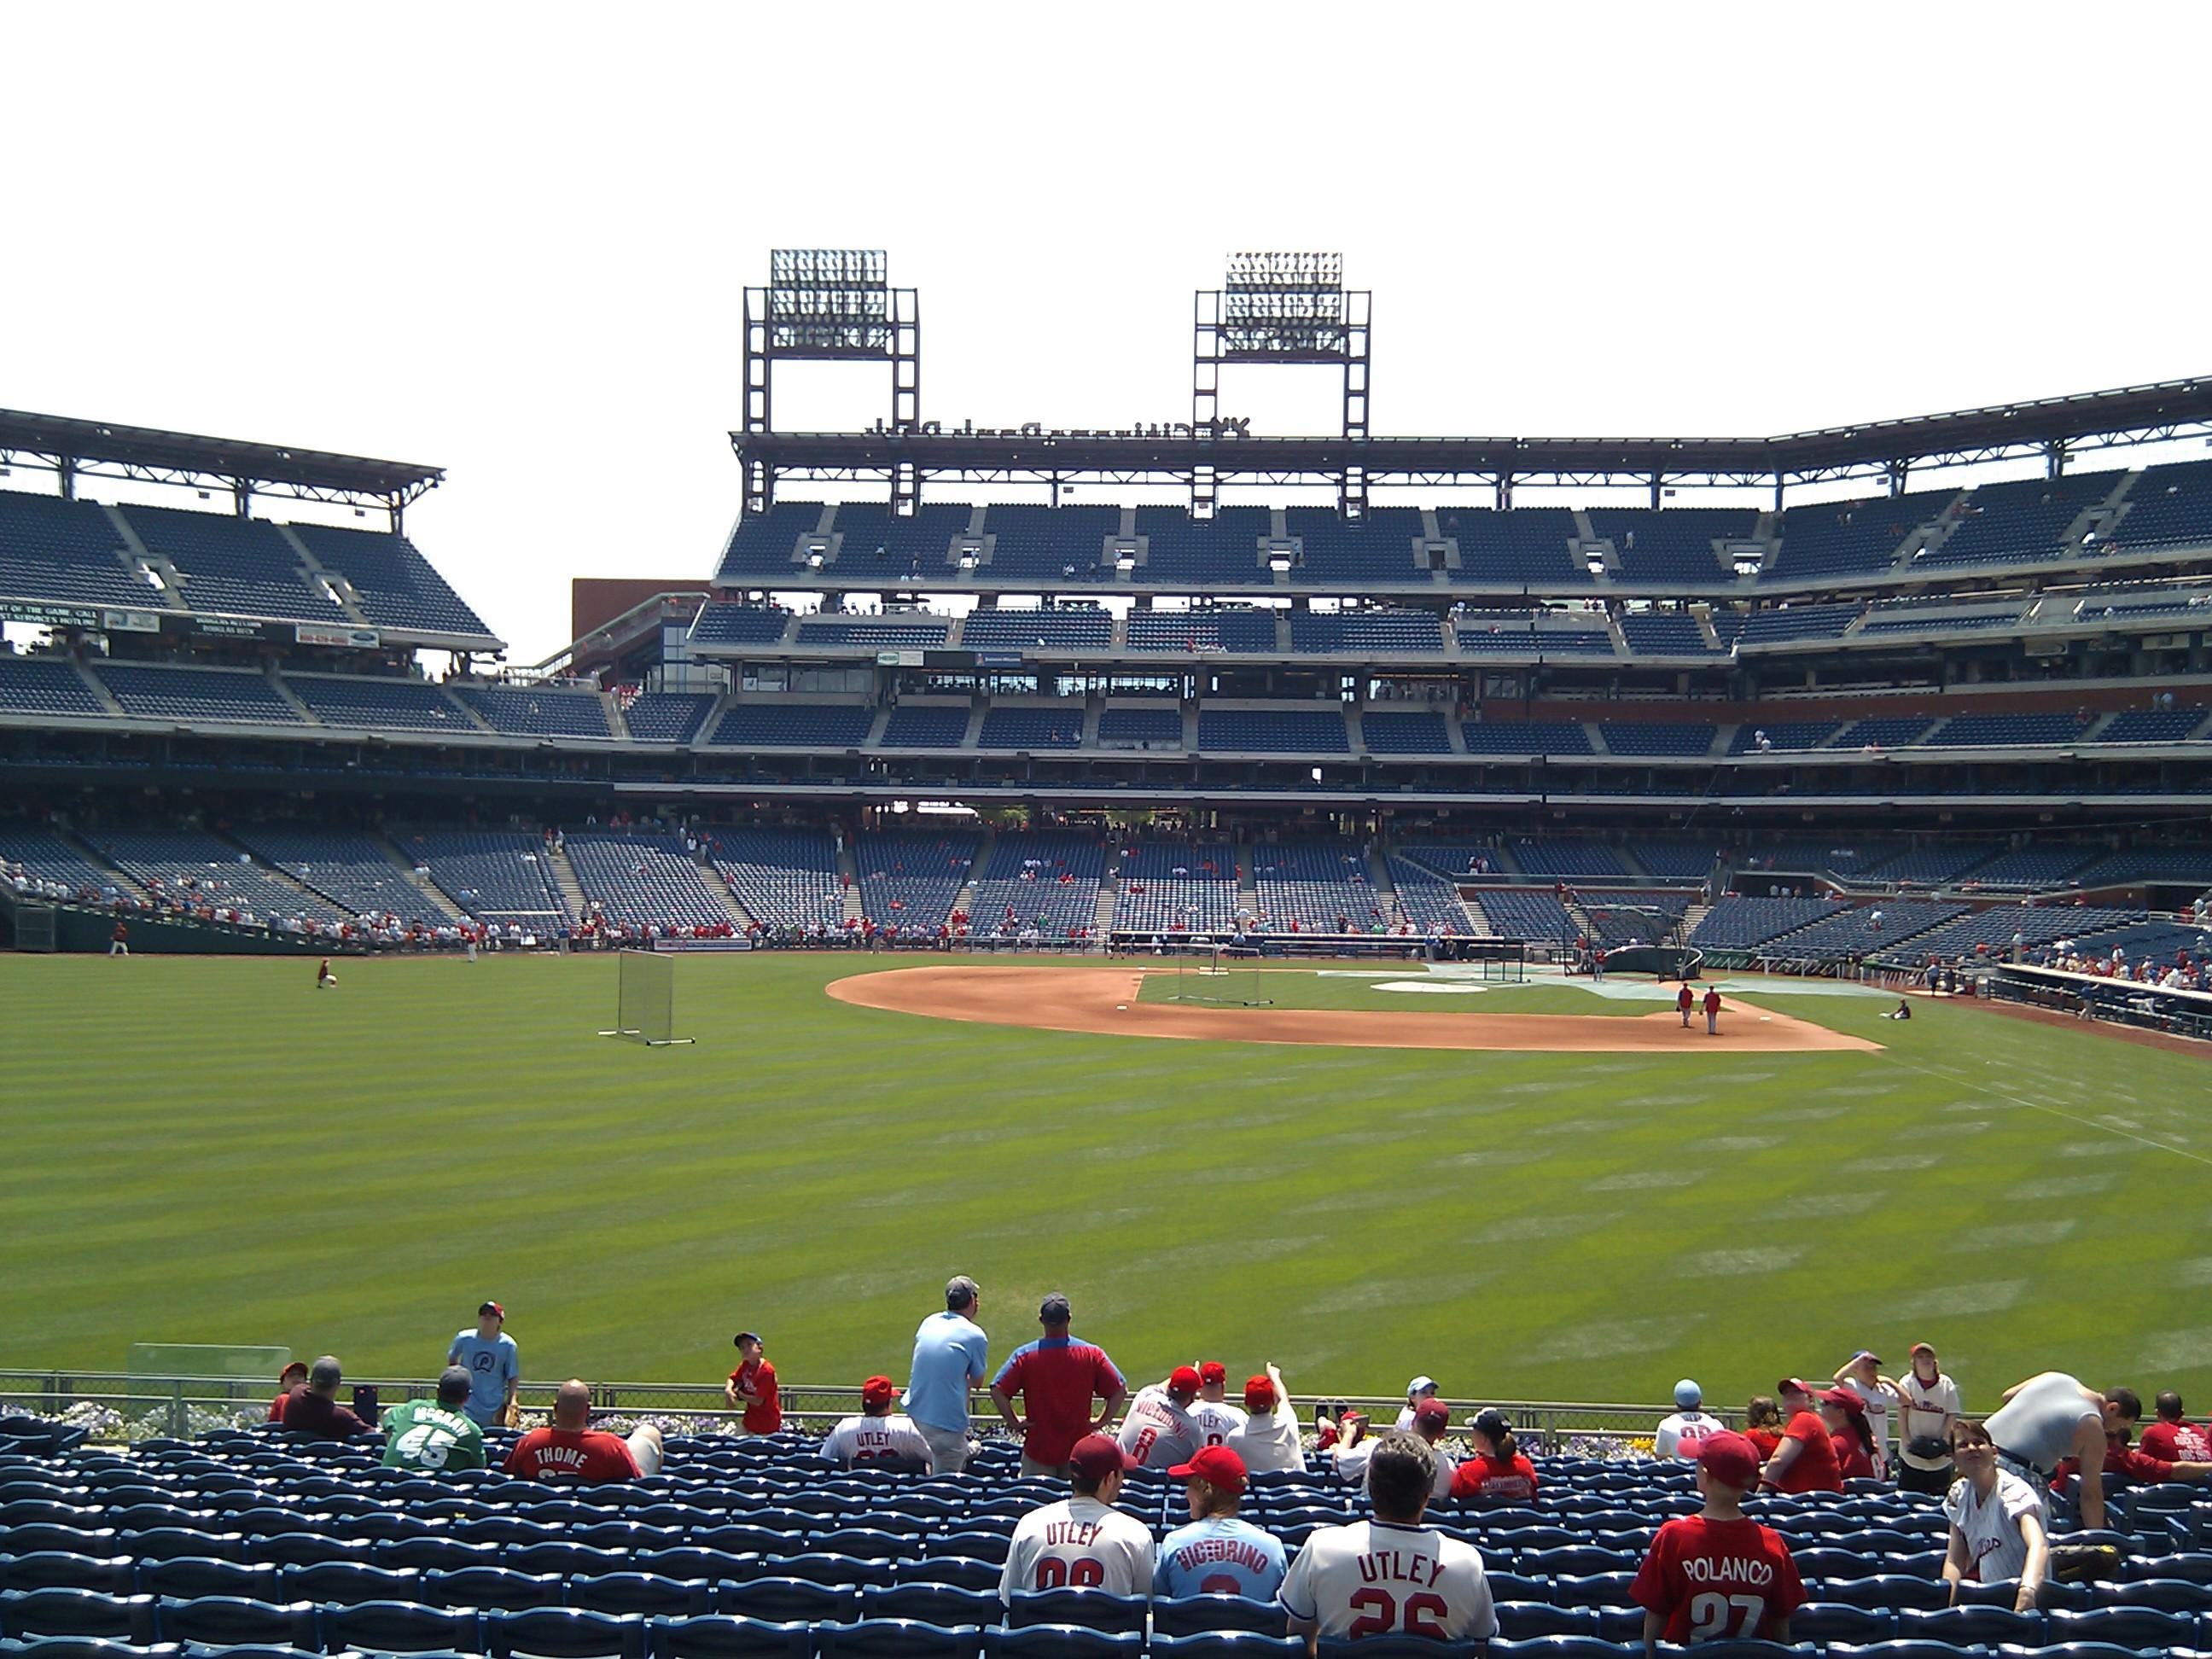 Citizens Bank Park Section 143 Row 19 Seat 9